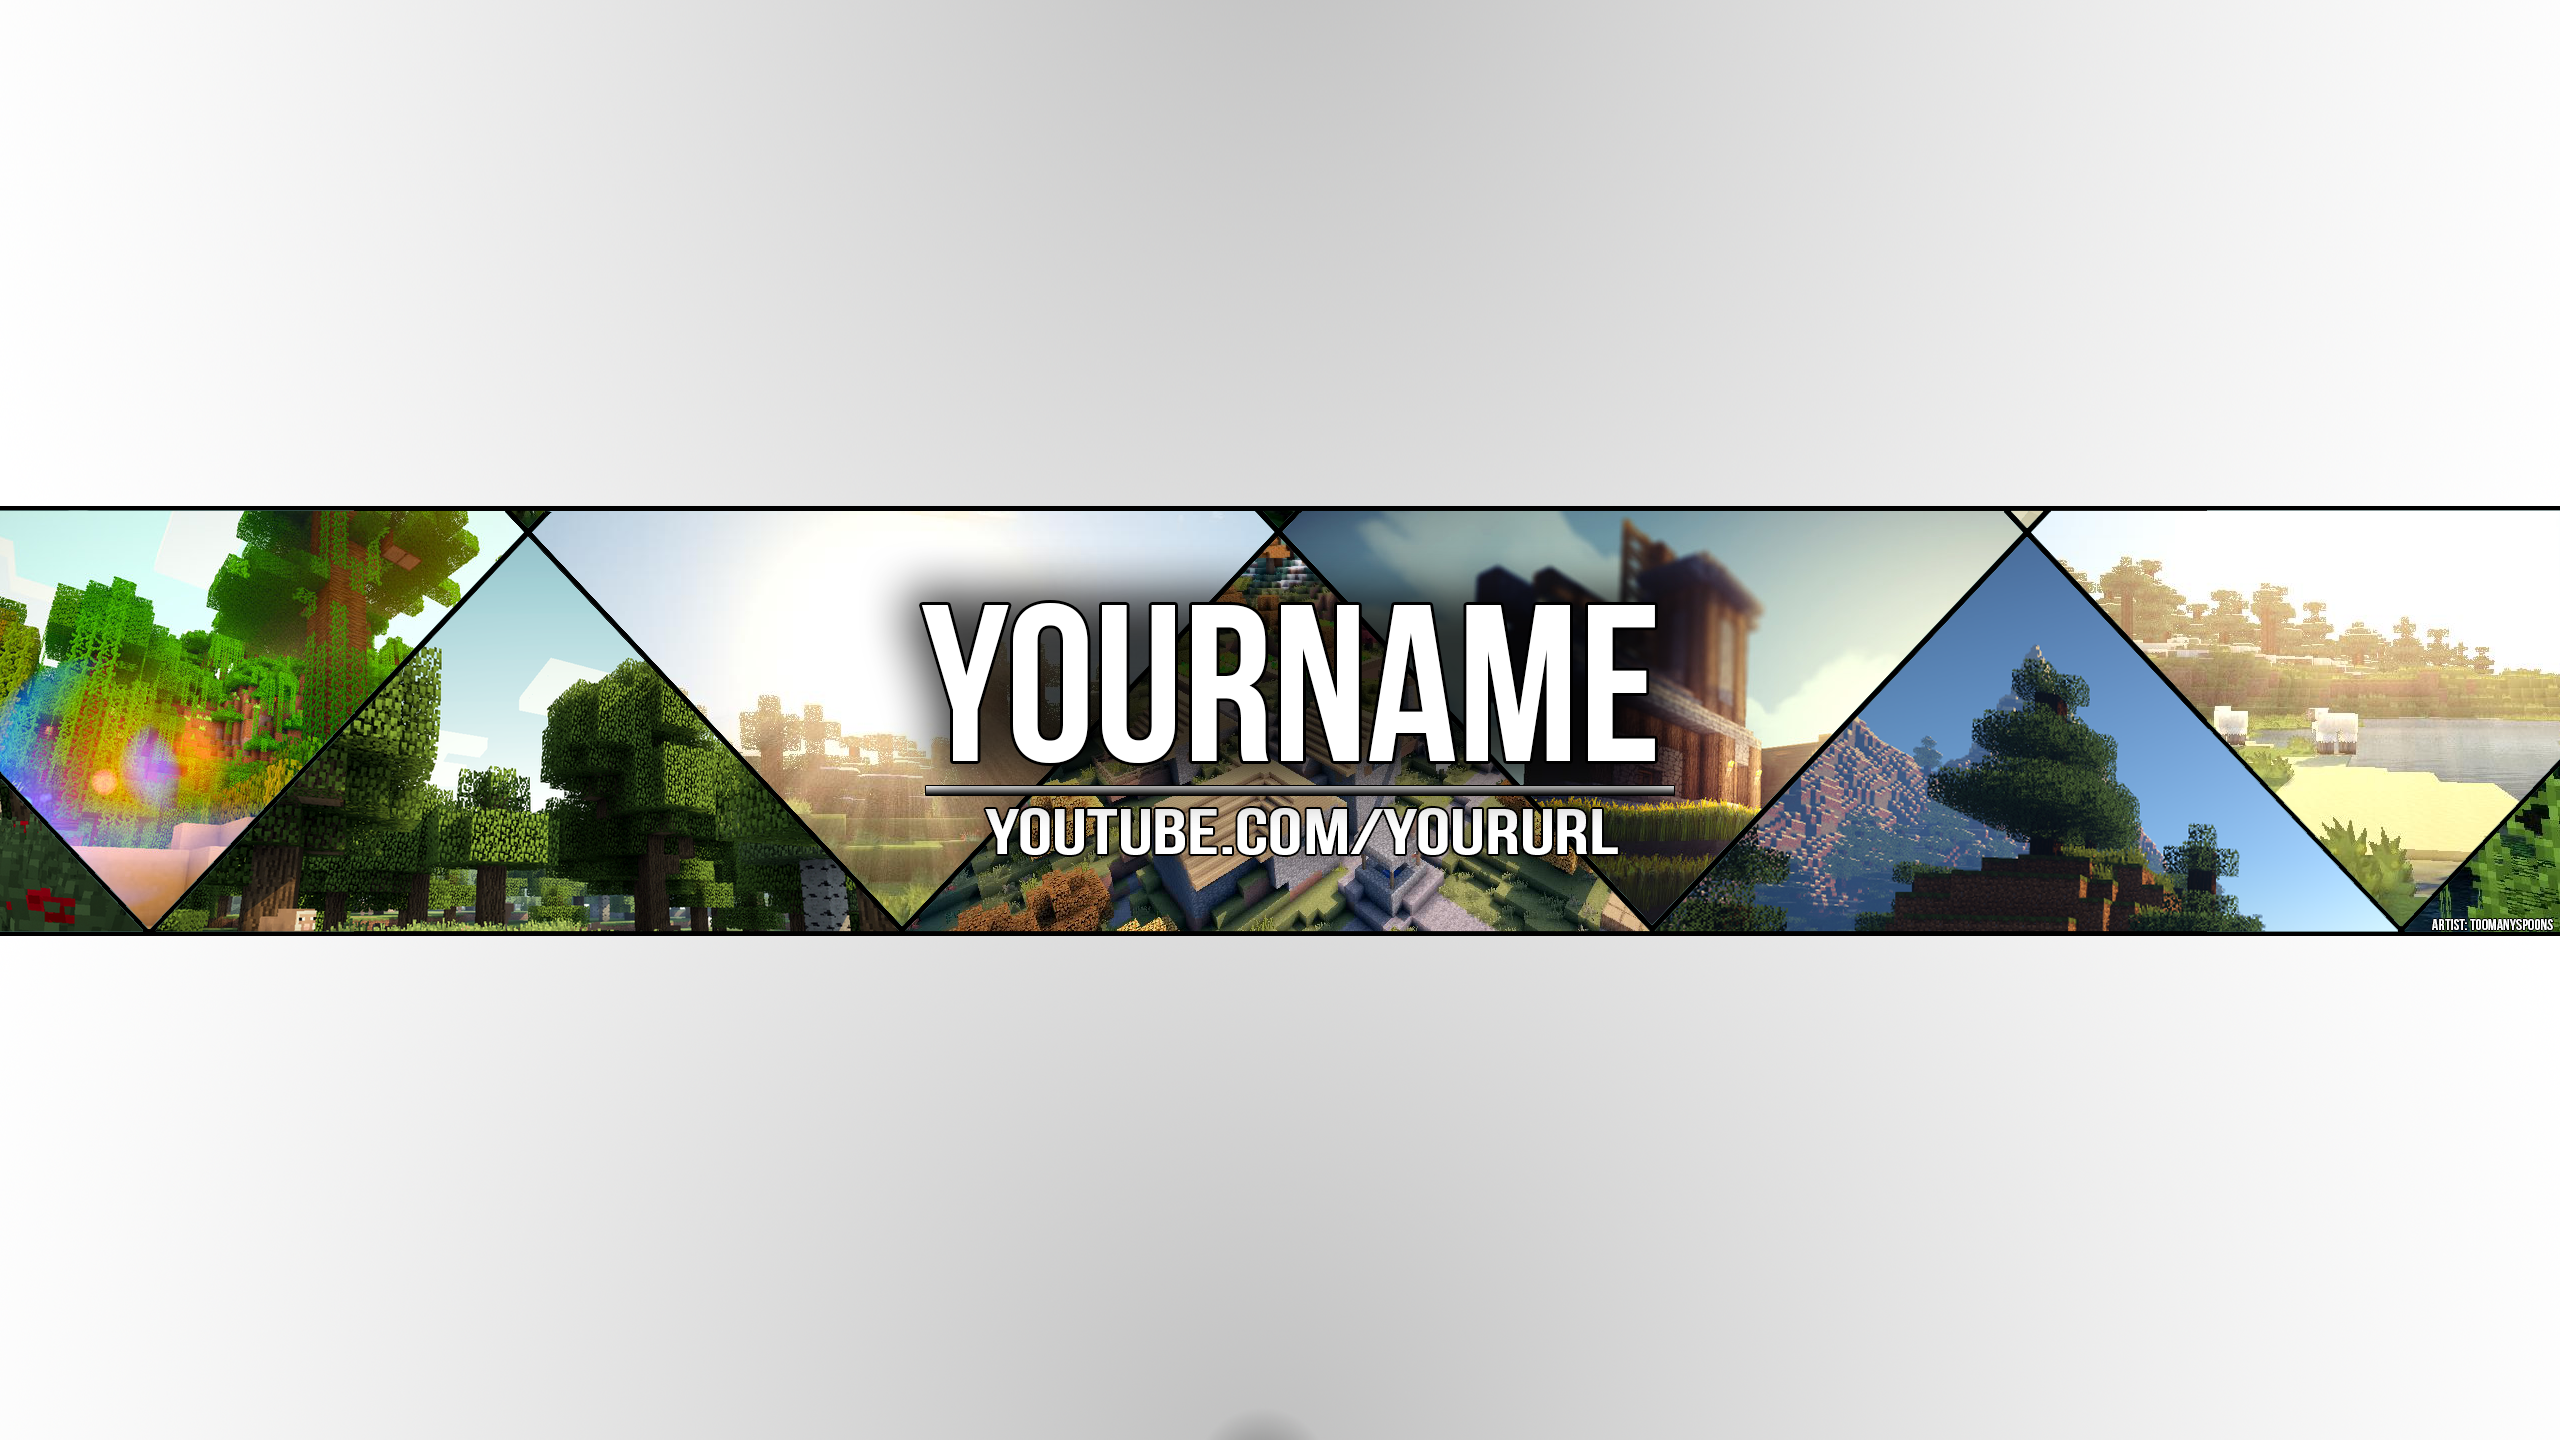 Minecraft Themed Youtube Cover Art Correct Size By Toomanyspoons